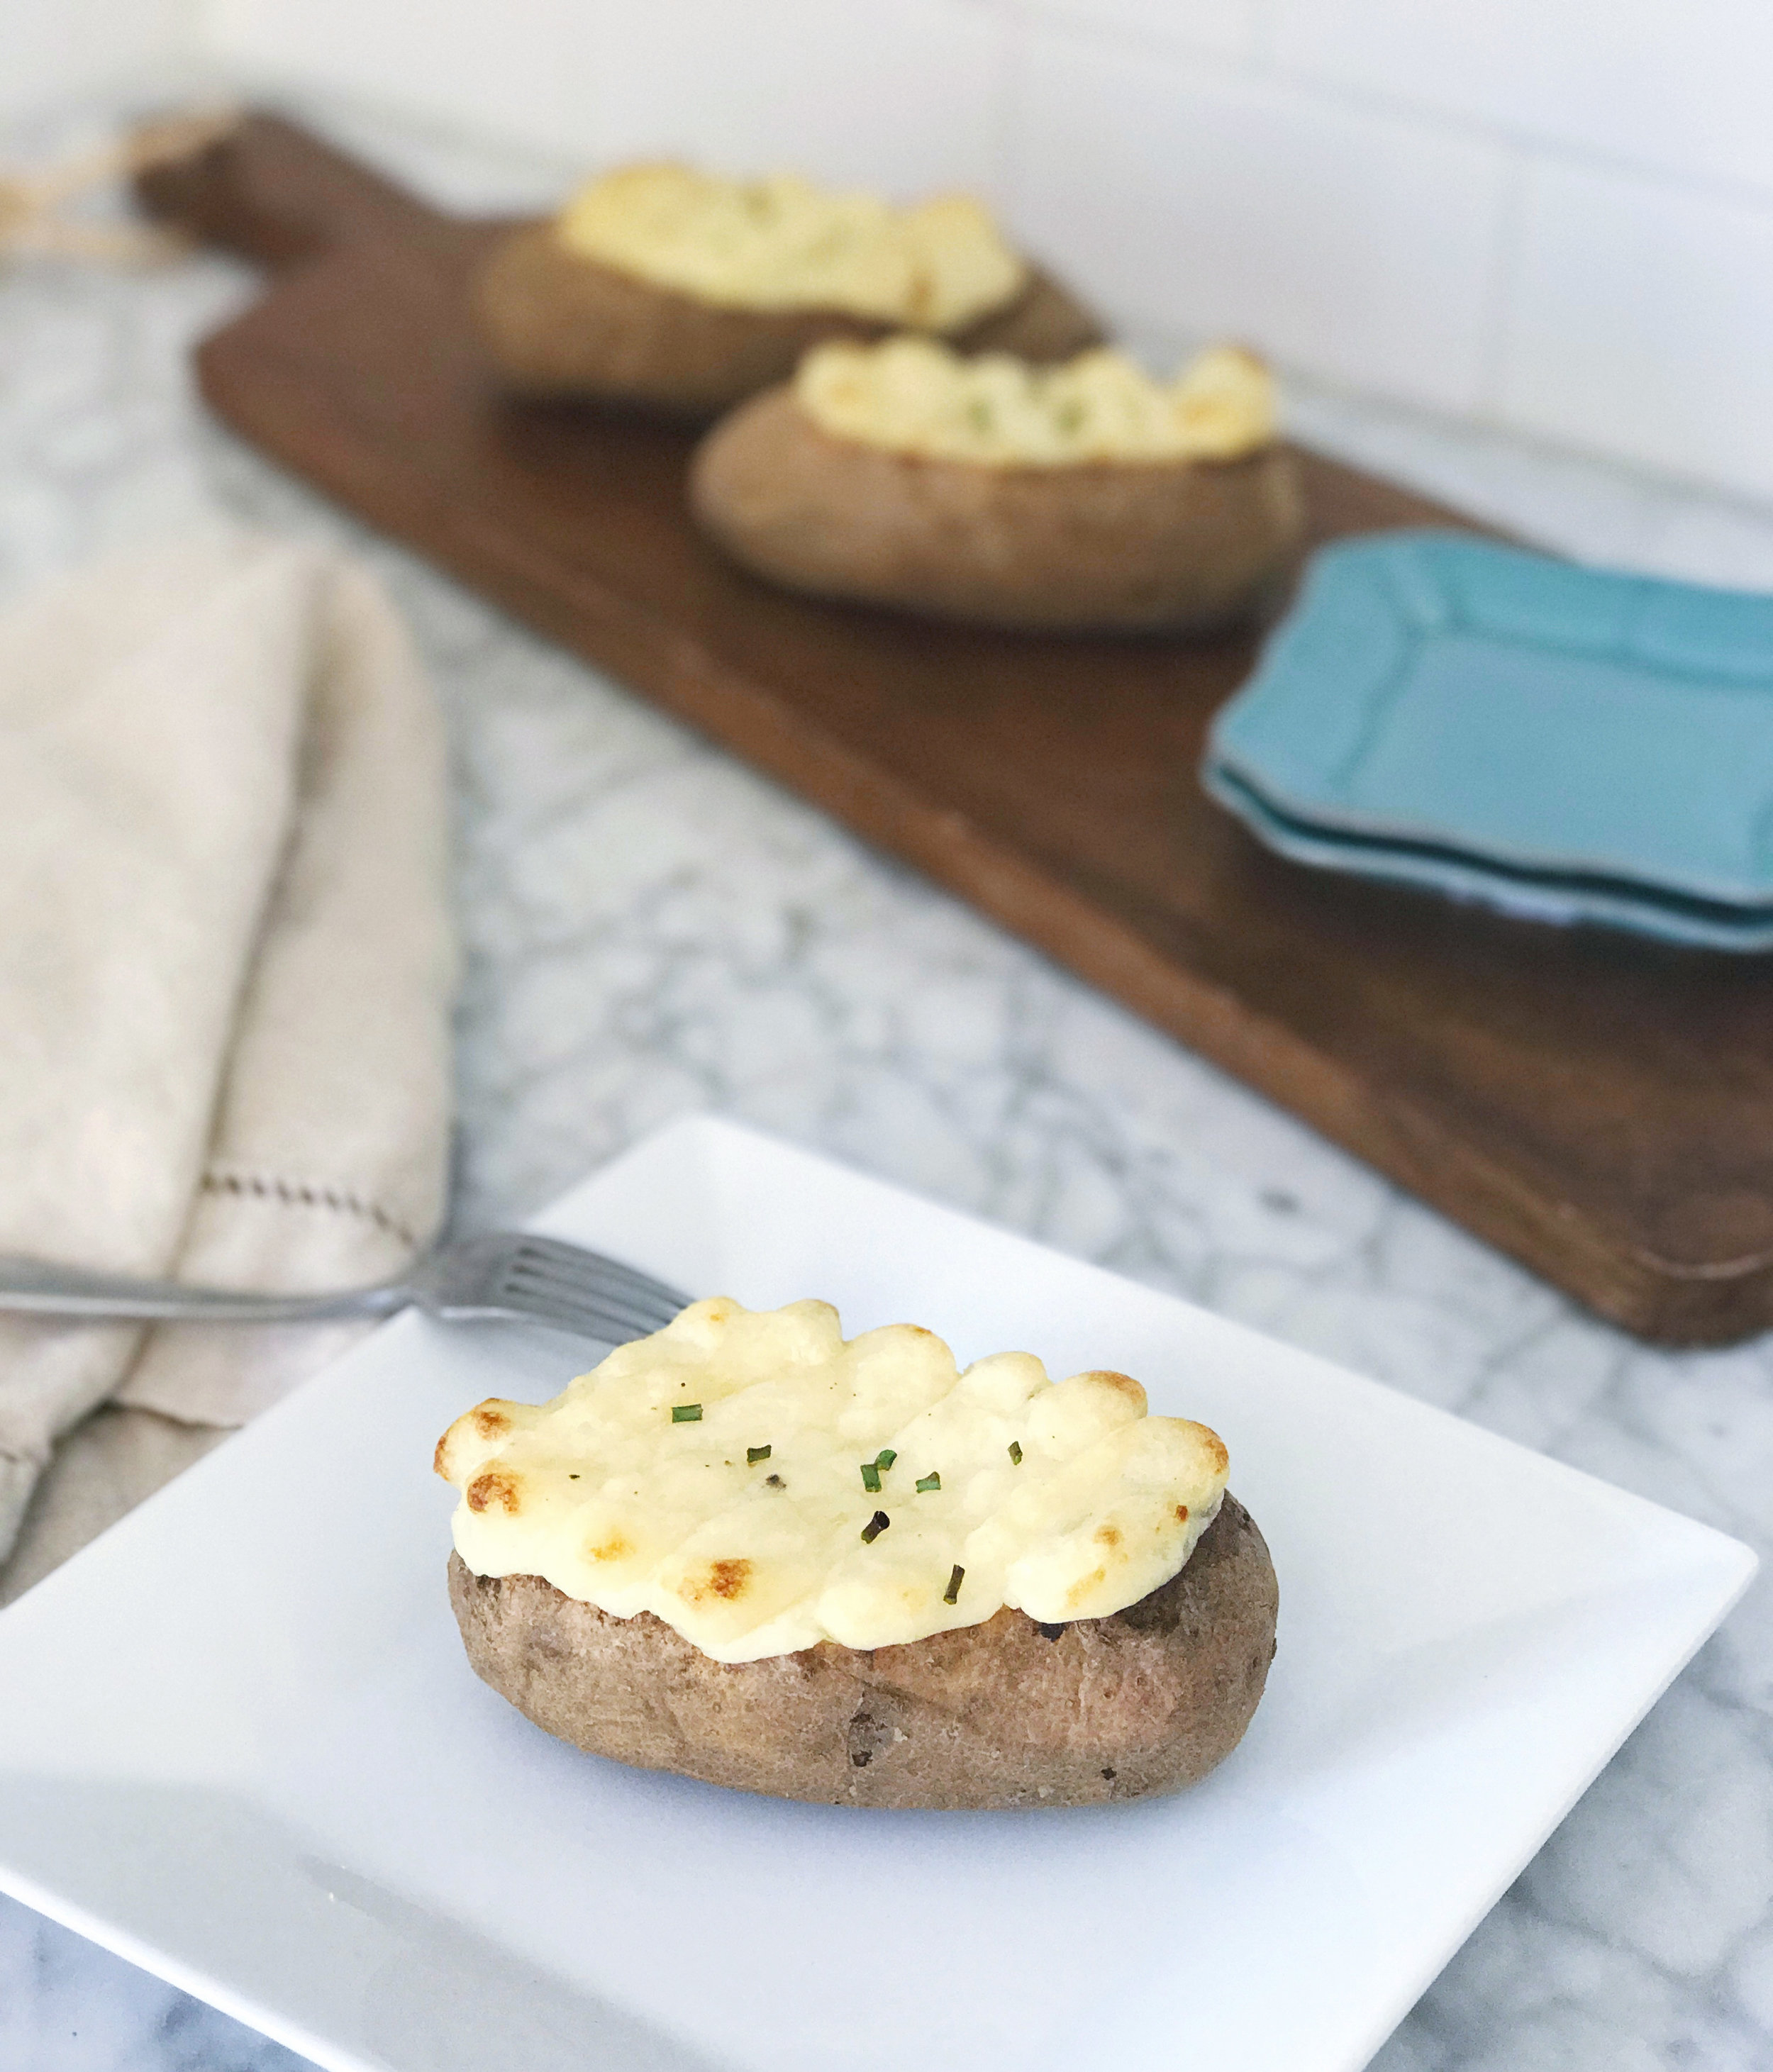 Goat Cheese Twice Baked Potatoes - That Cozy Life